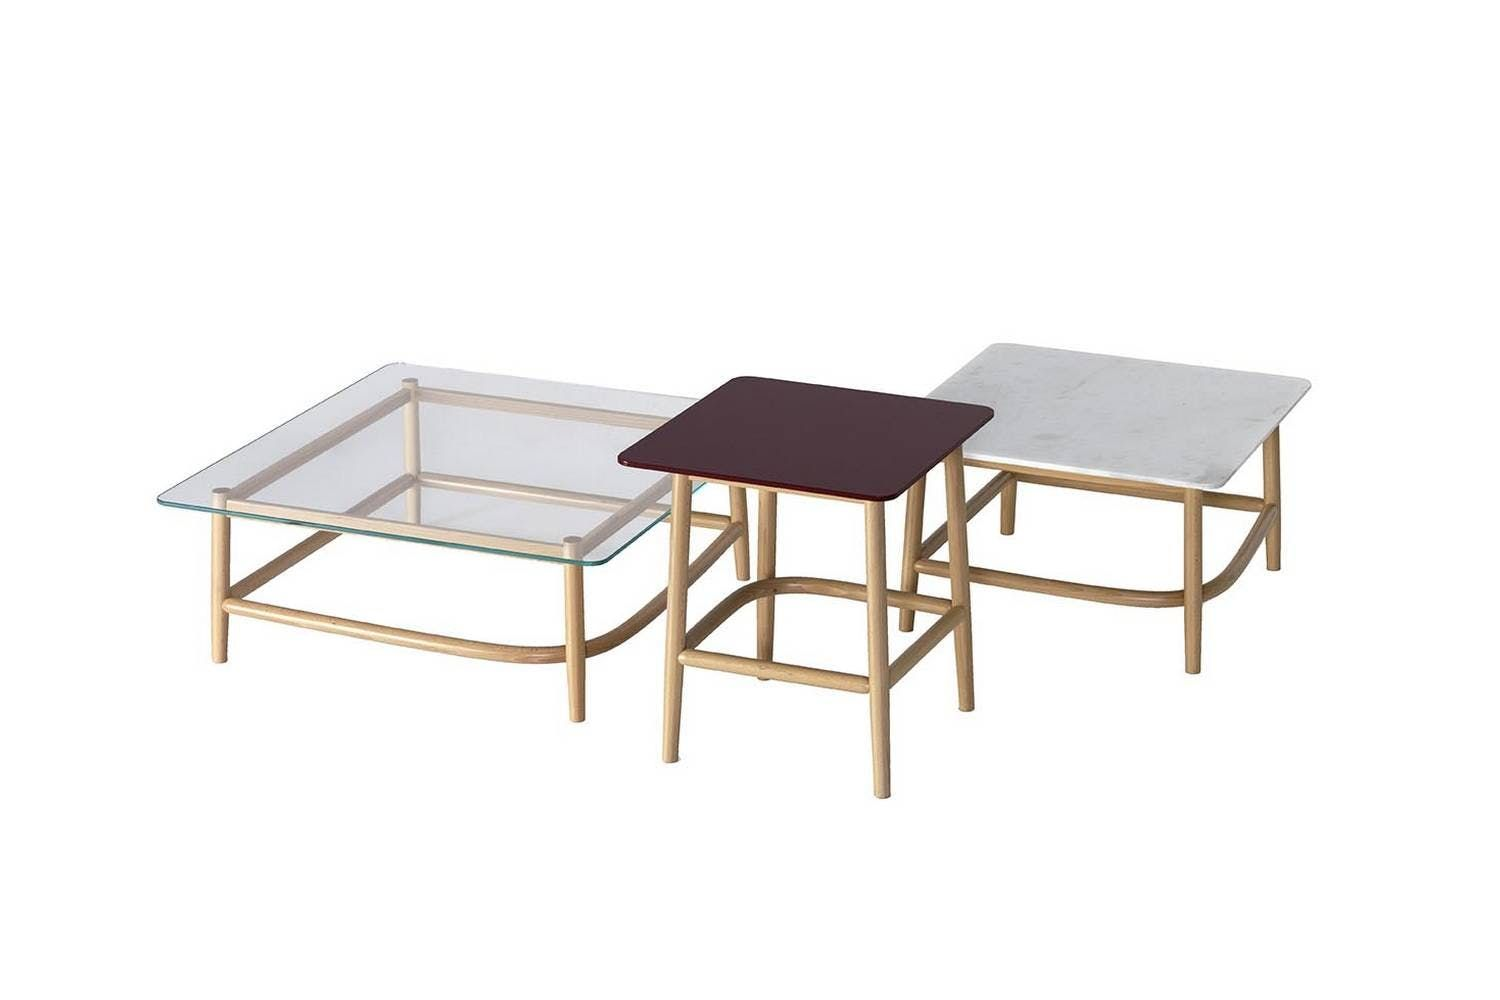 H H Studio Dubai Single Curve Medium Occasional Tables By Gebruder Thonet Vienna Gmbh Gtv Low Tables Table Coffee Table Furniture [ 1000 x 1500 Pixel ]